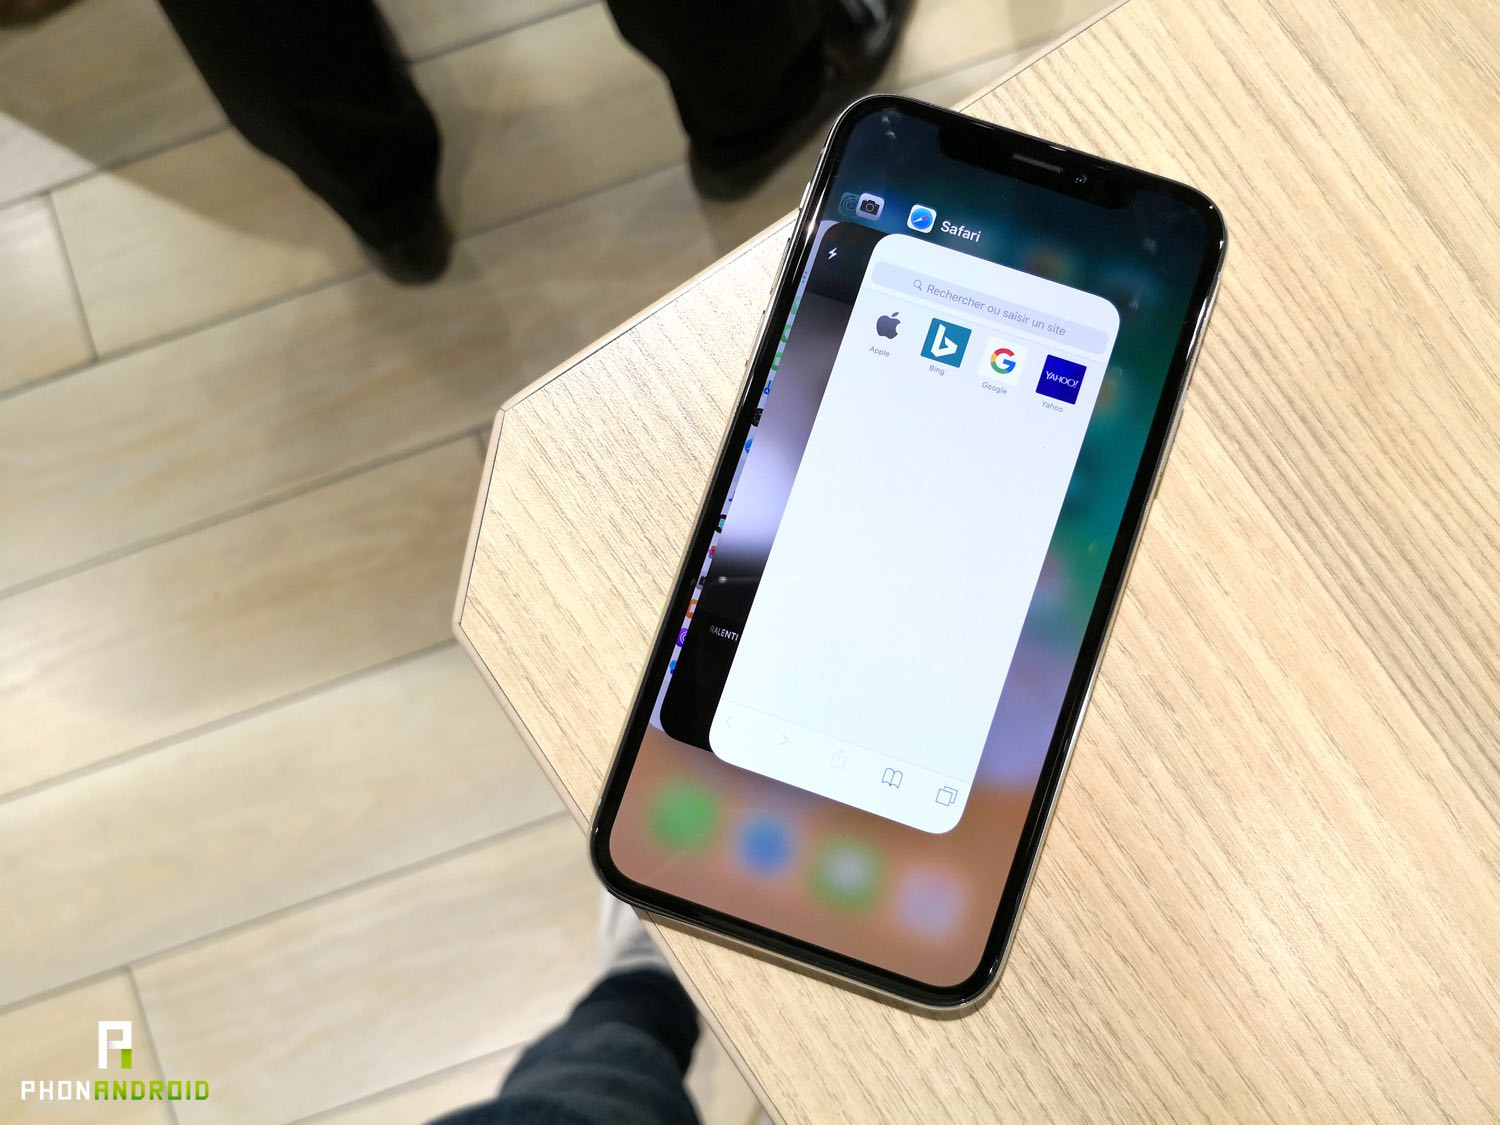 iphone x prise en main multitâche